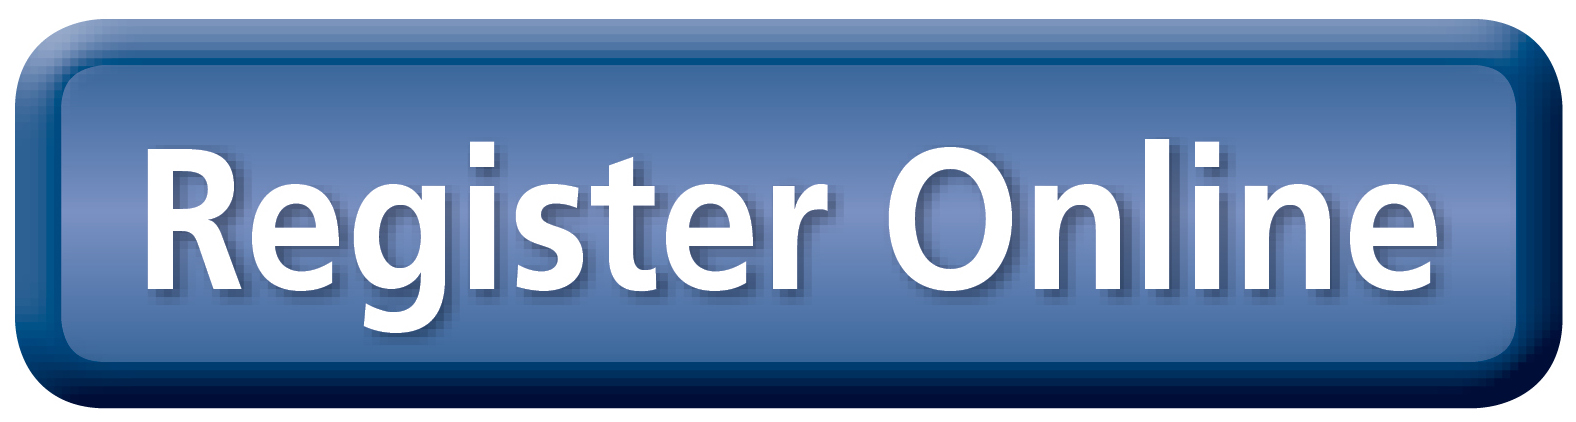 Register online button